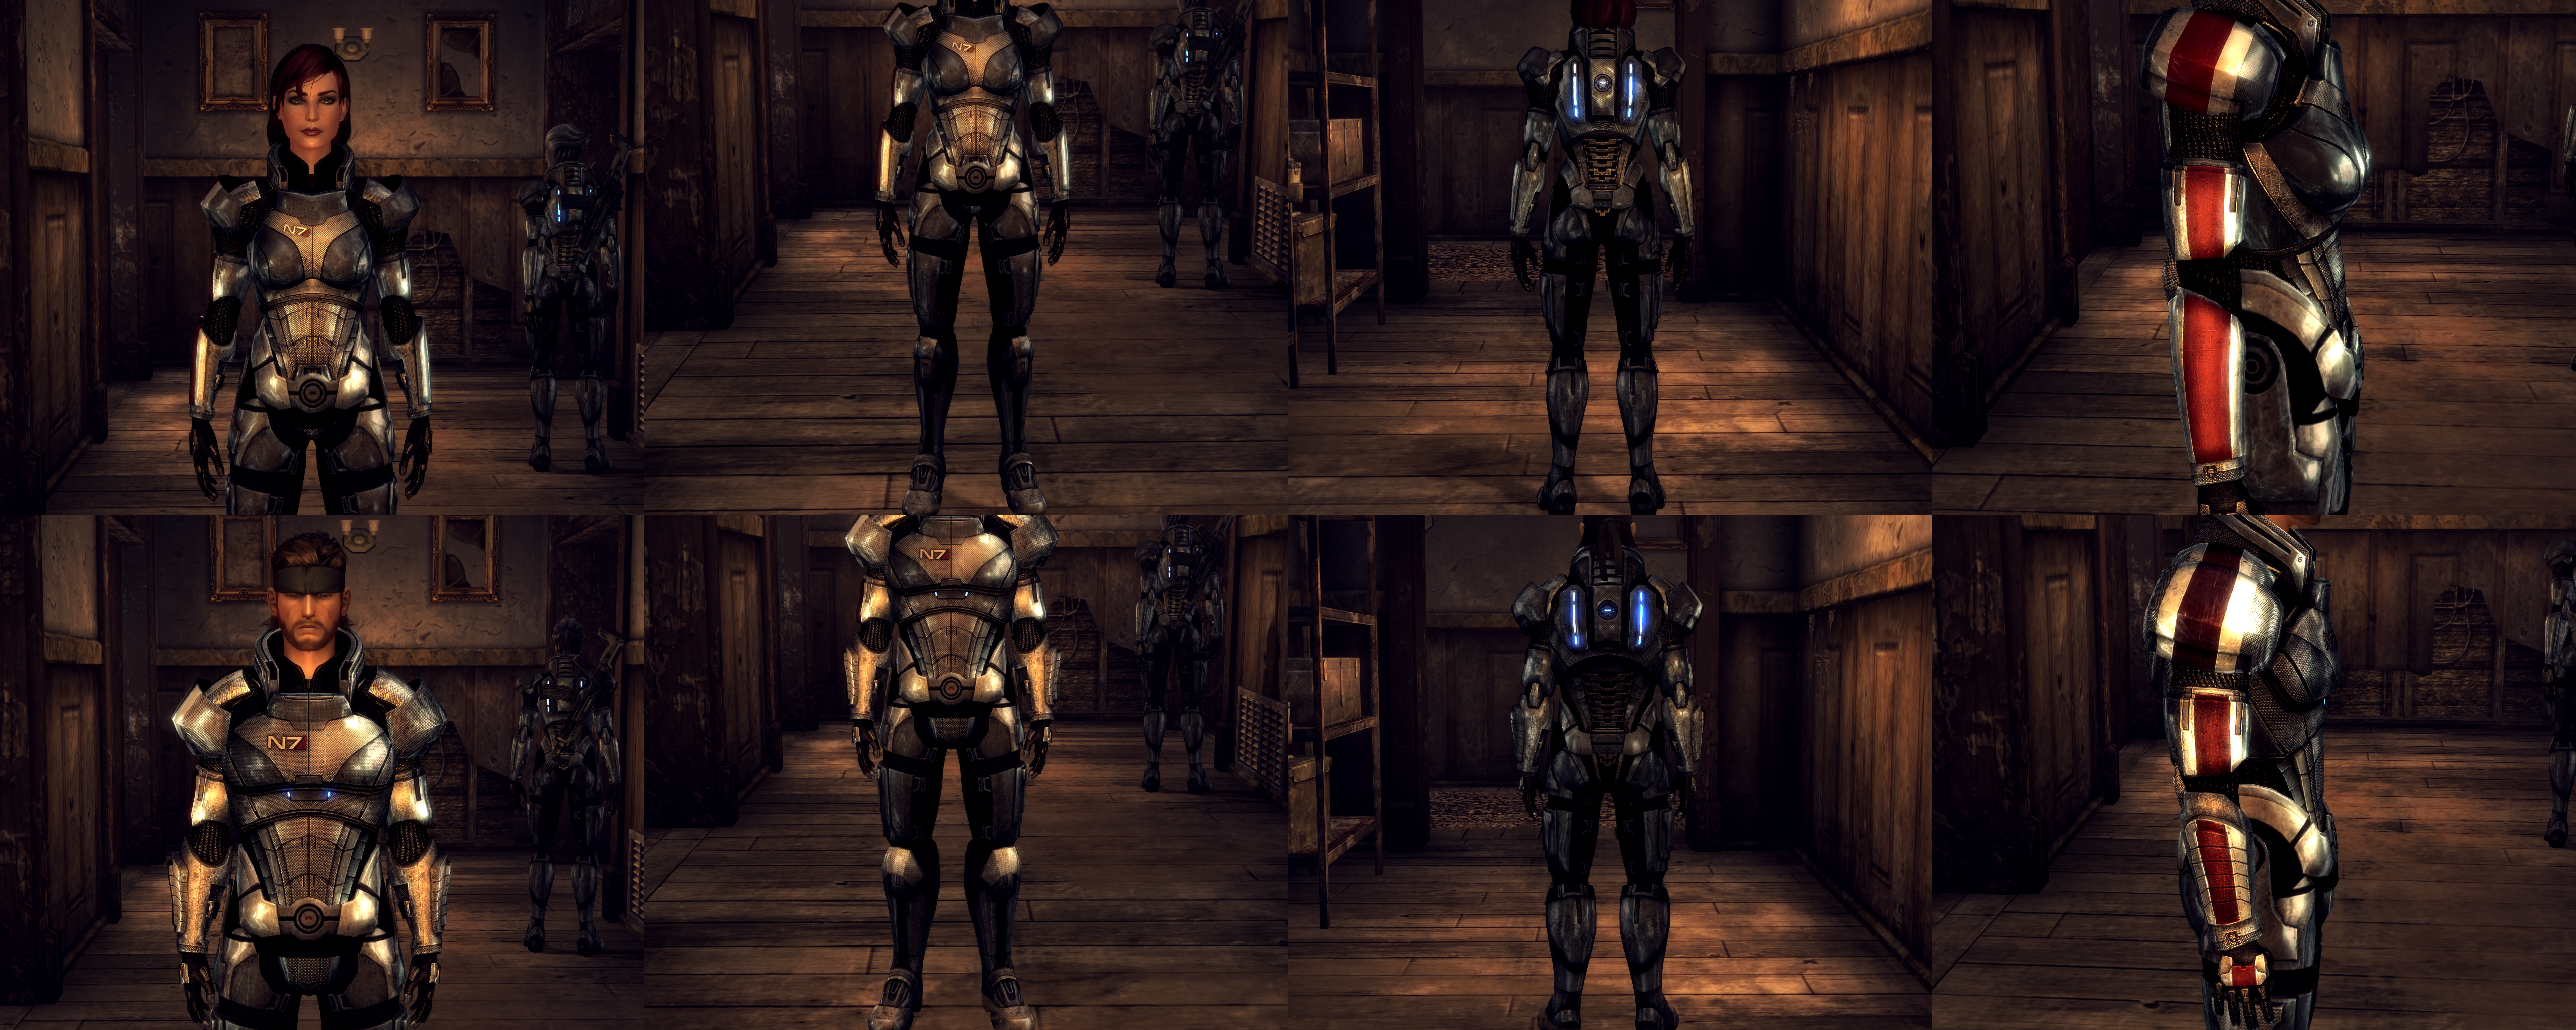 Fallout New Vegas Commander Shepard S N7 Armor By Lsquall